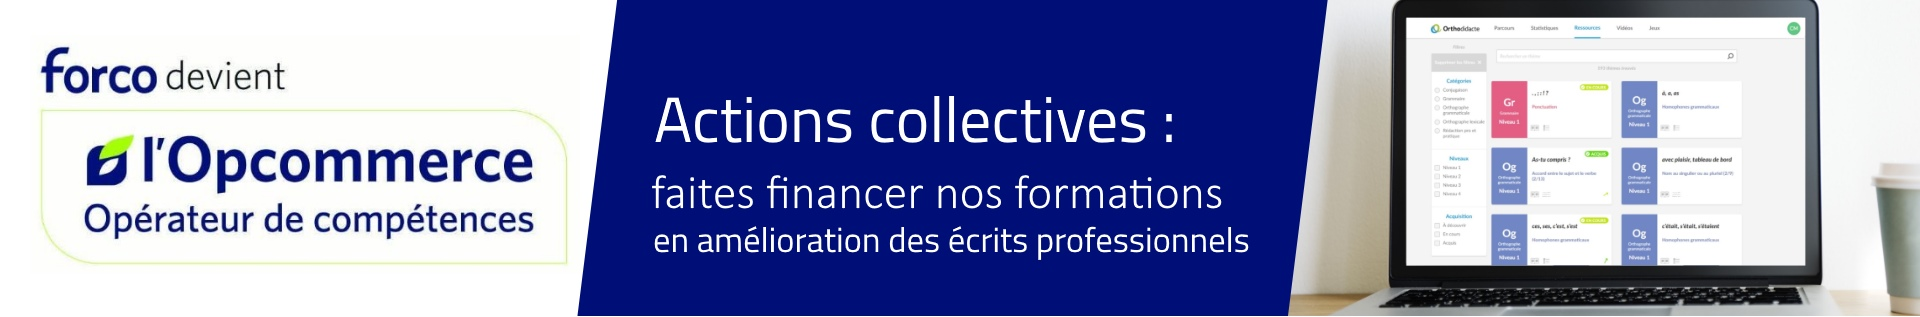 forco-actions-collectives-mai2019